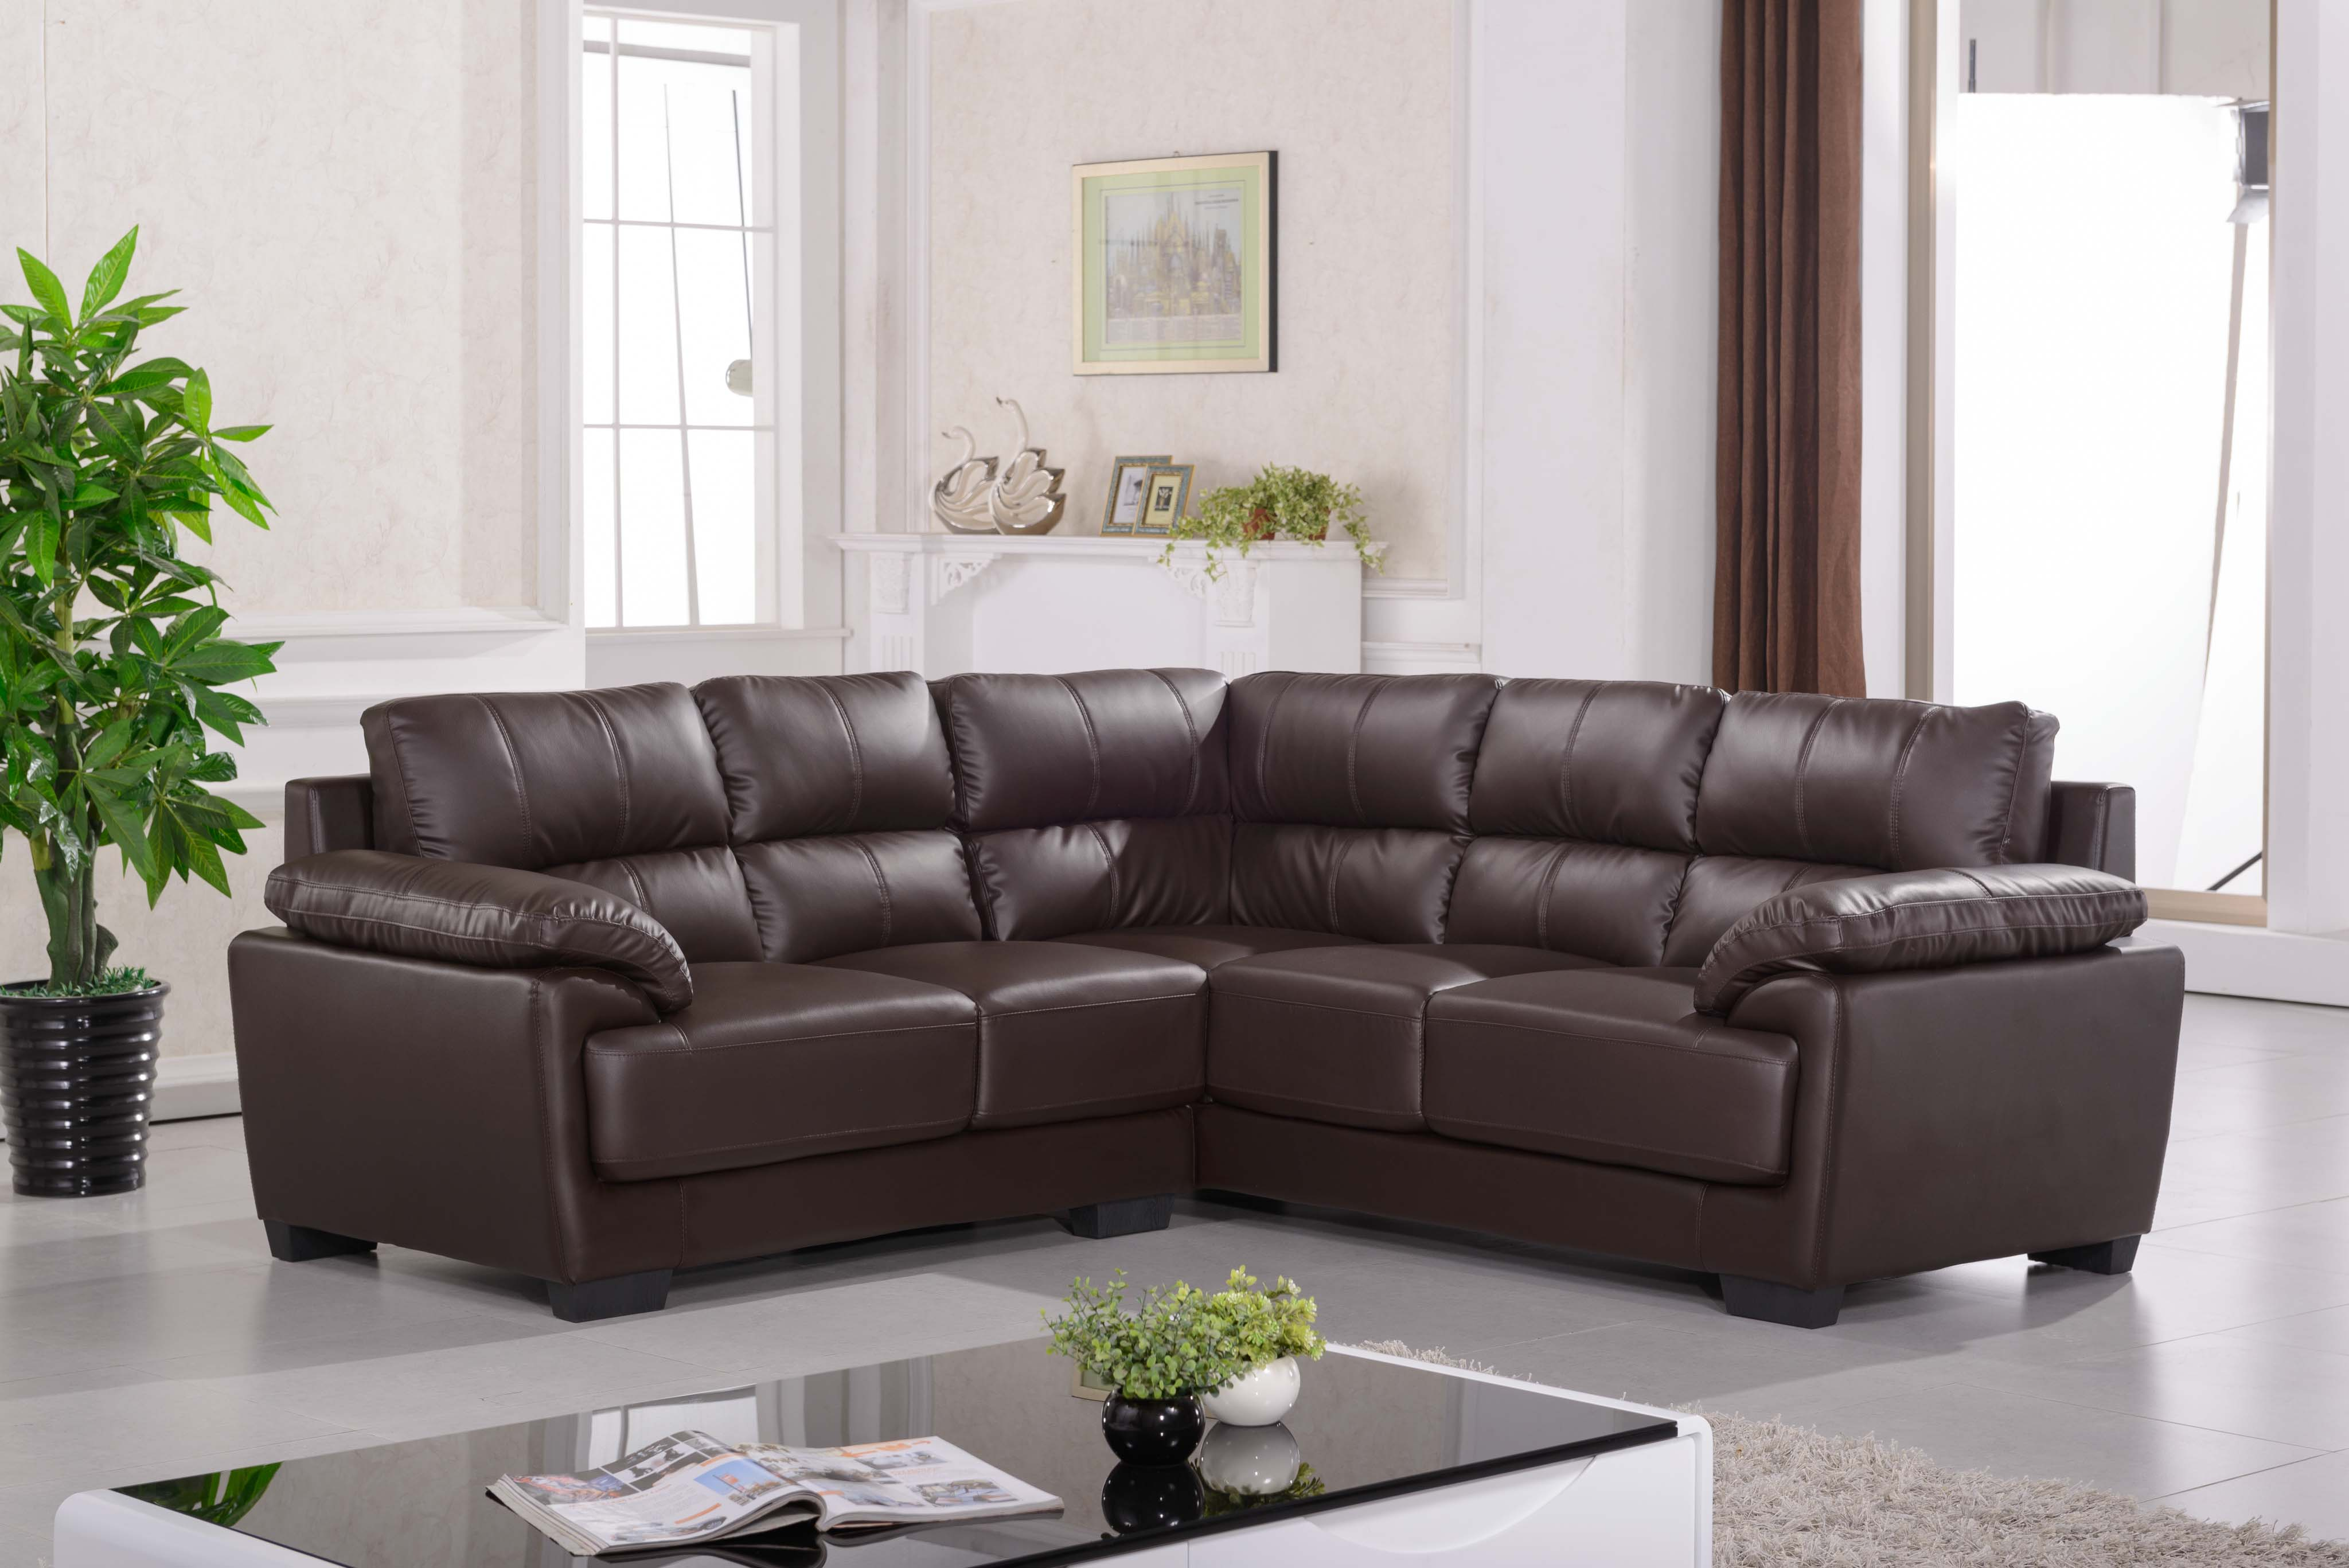 African Living Room Fabric and Leather Sofa Covers Leather Sofa